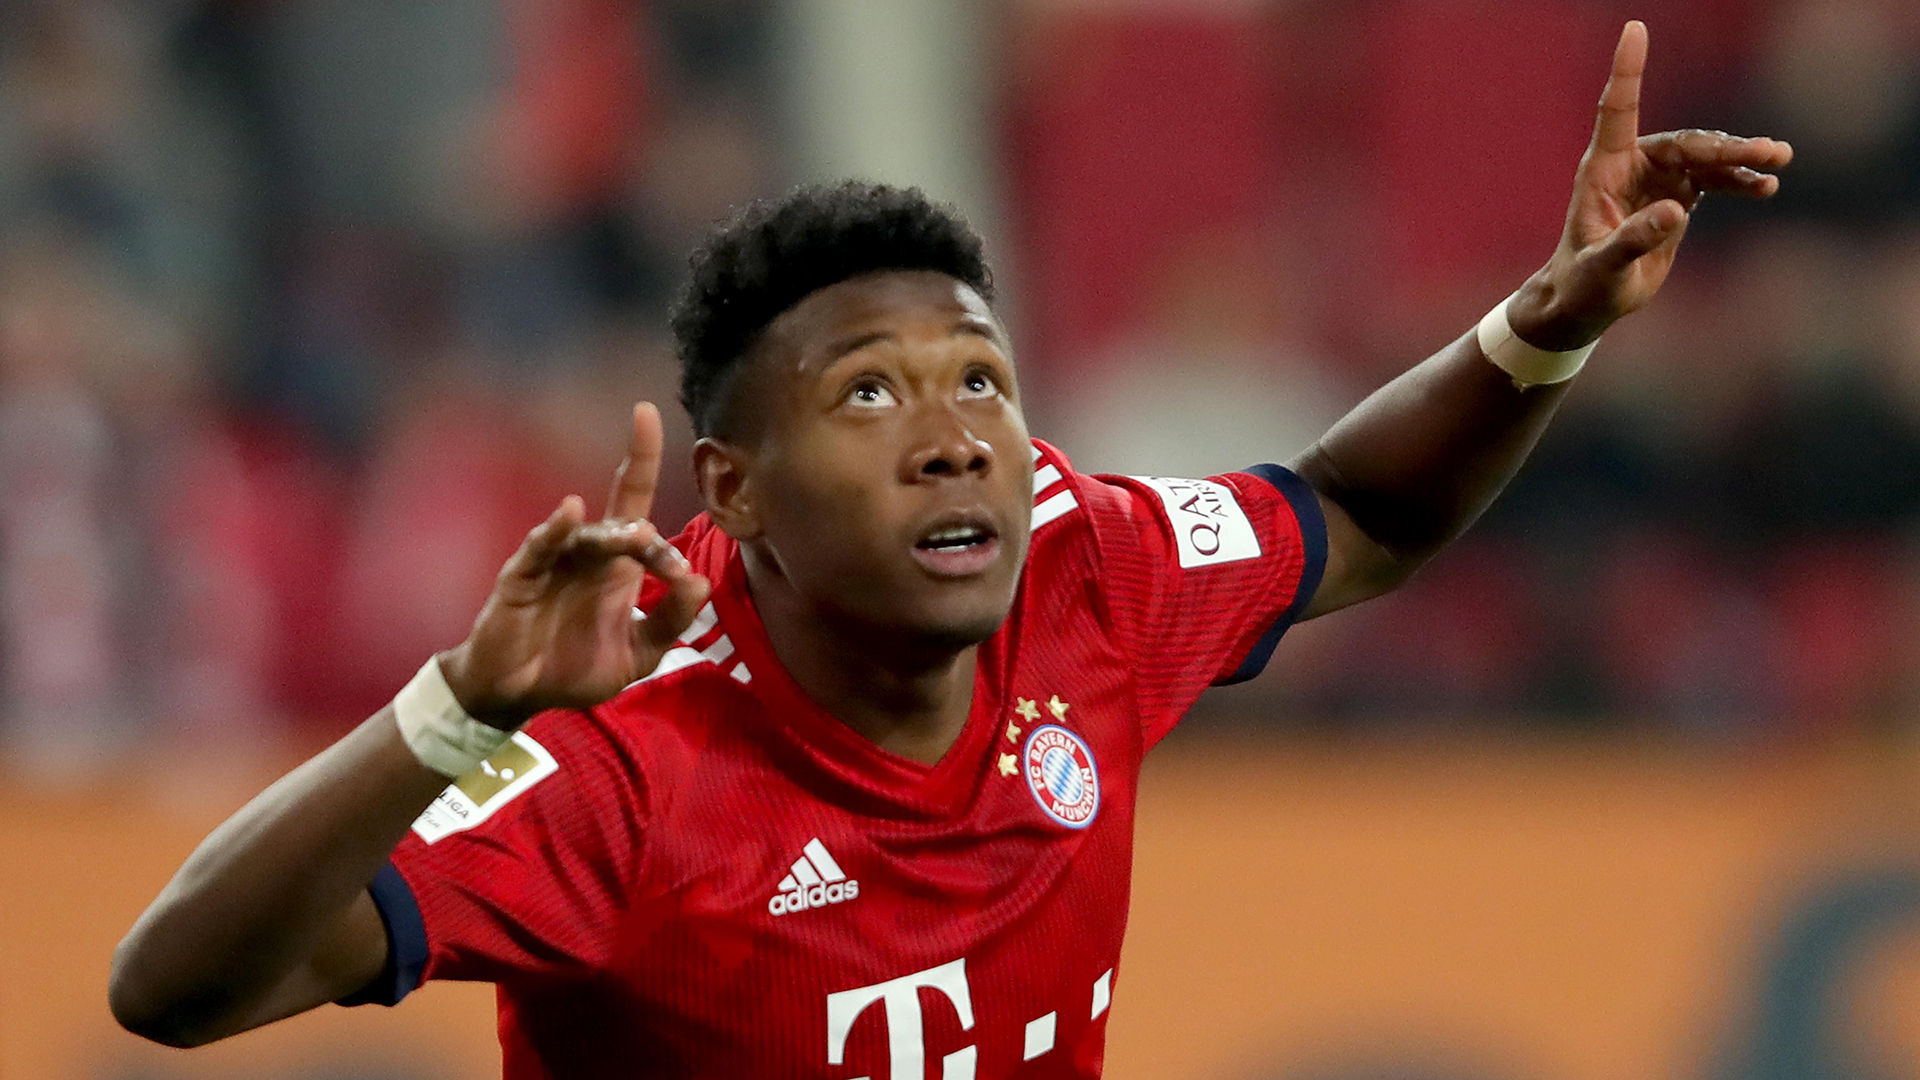 Arsenal Fan Alaba Says He Could Be Interested In Move To